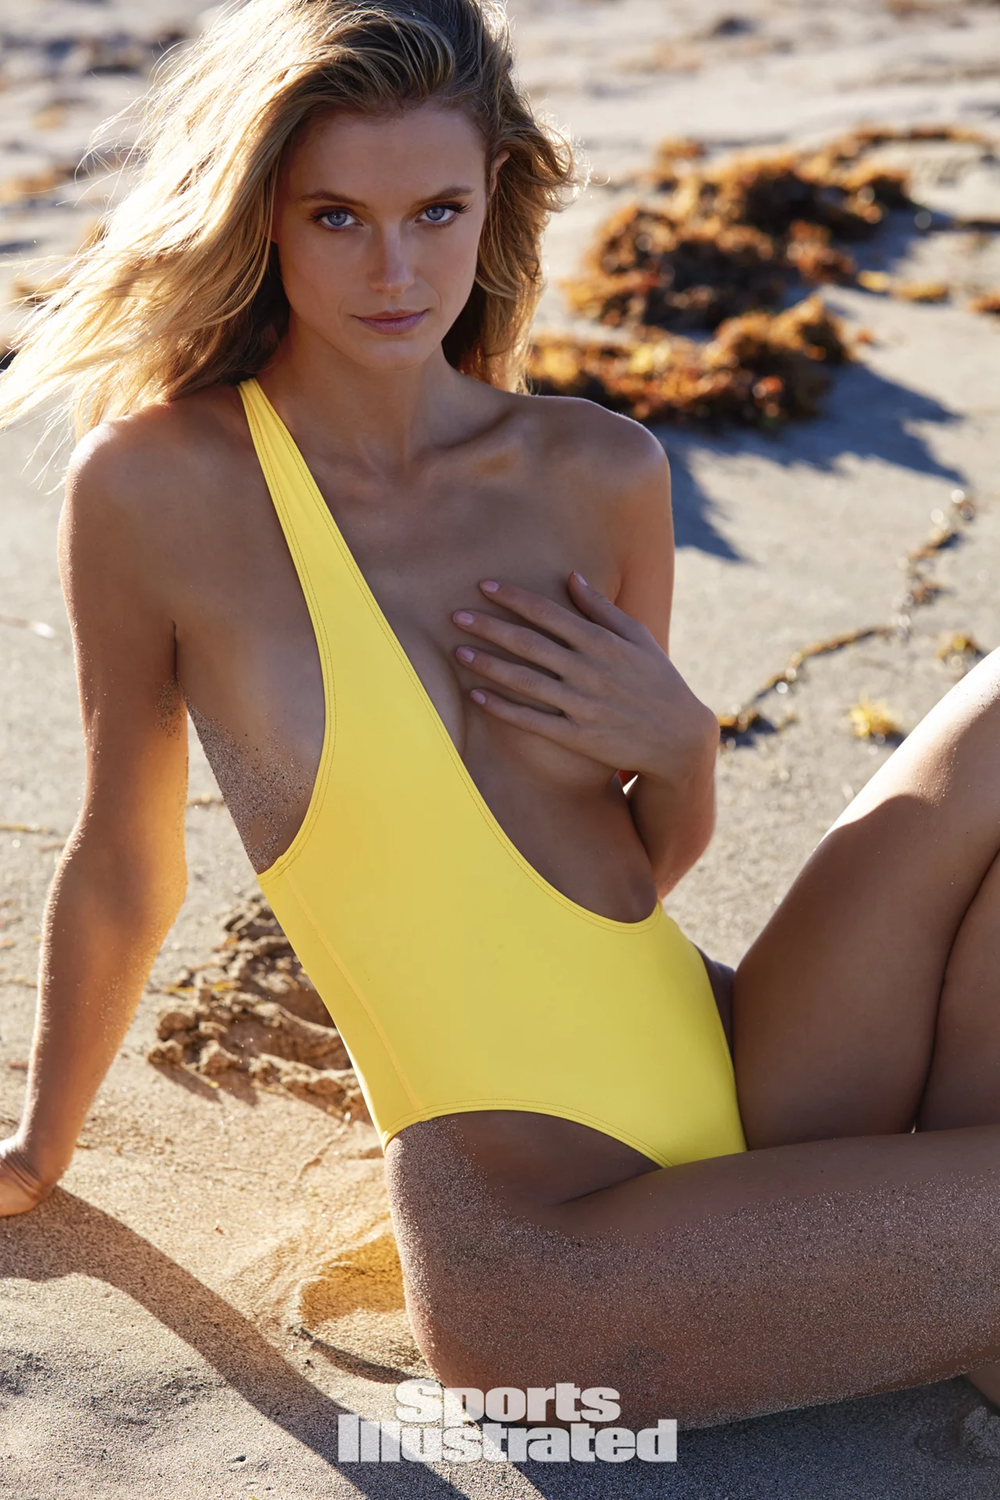 Kate Bock for Sports Illustrated Swimsuit Issue 2018